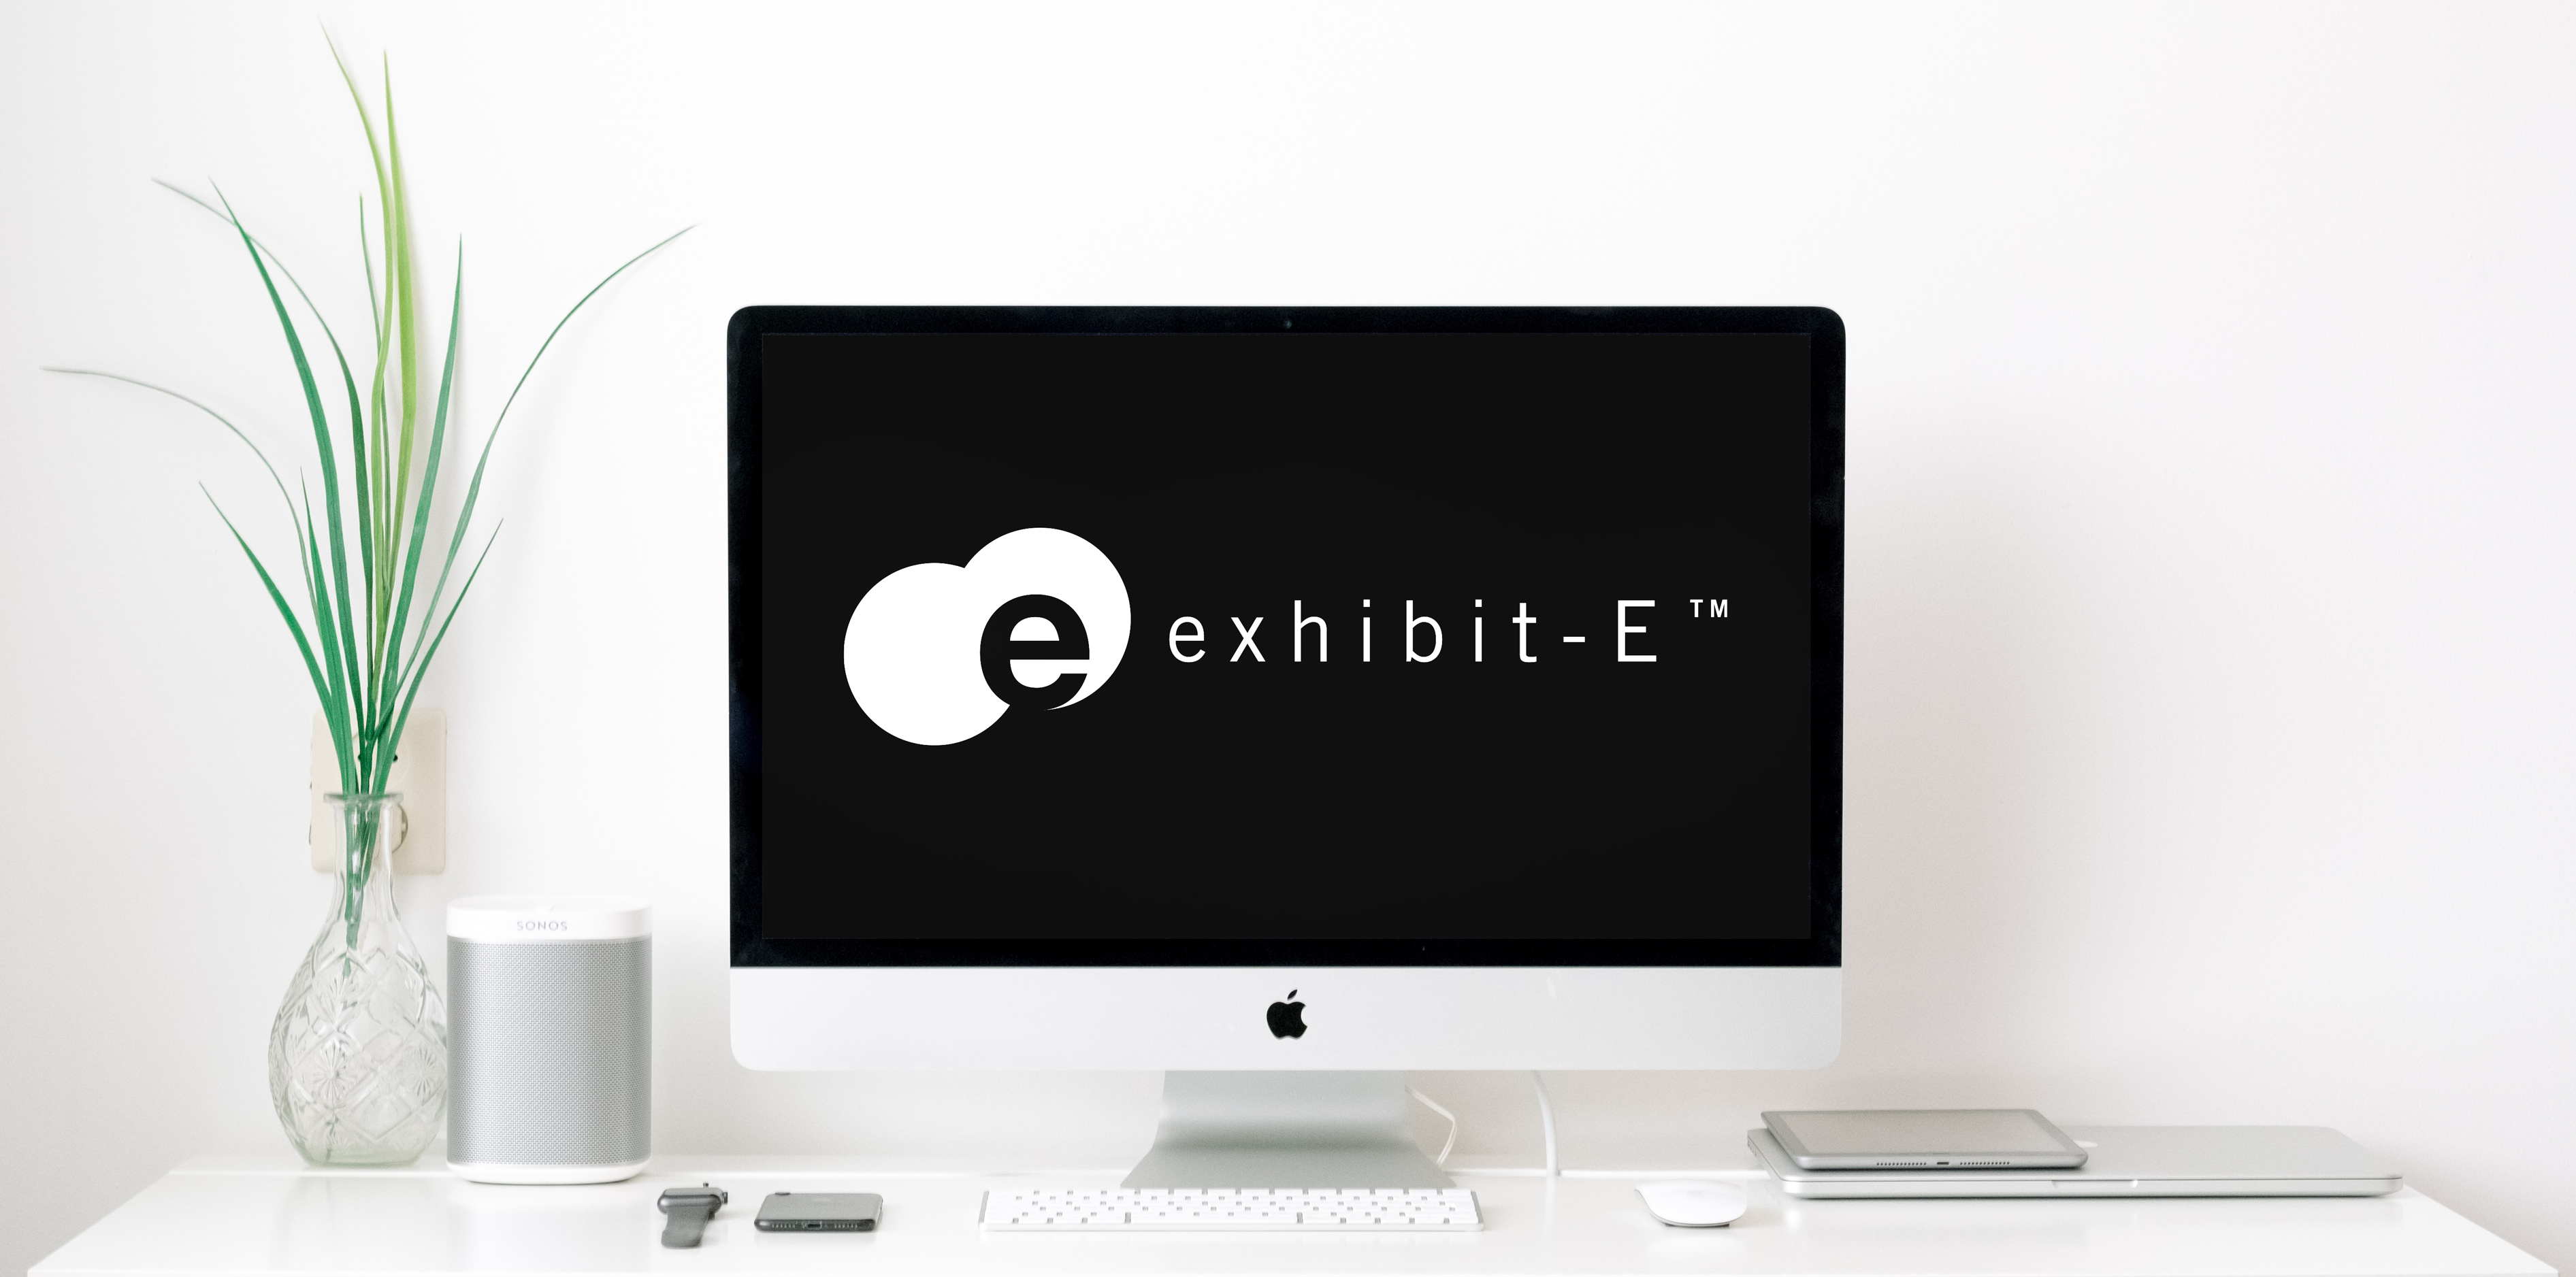 On a white desk there is desktop with a black background with the exhibit-E logo. In addition to the desktop there is a plant in a clear vase and an assortment of various apple technologies.